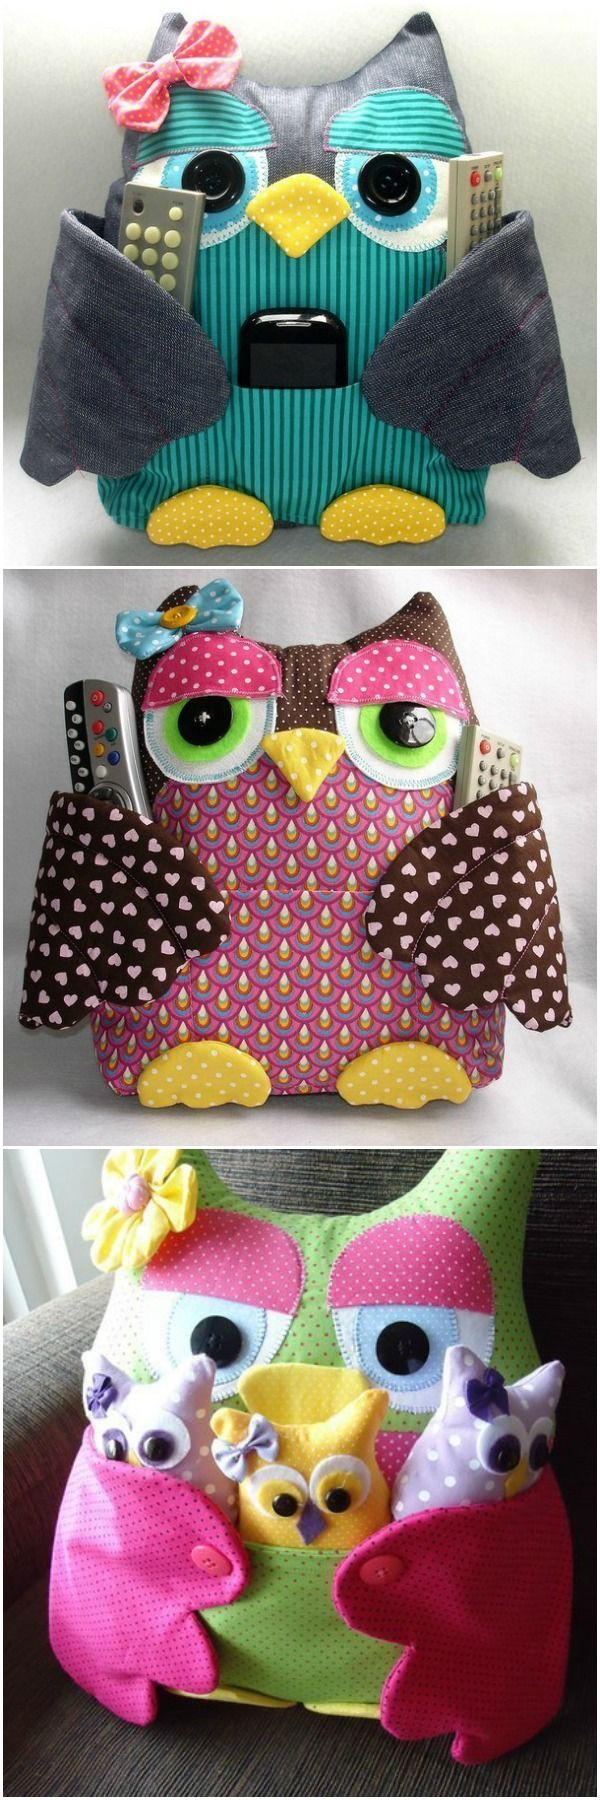 Sew Owl Pillow Pattern, Owl Cushion, Remoter Owl Snuggle Cozy Free Pattern #Sew, #Toy, #Organizer Template => http://www.fabartdiy.com/how-to-diy-fat-fabric-owl-pillow-with-pocket/